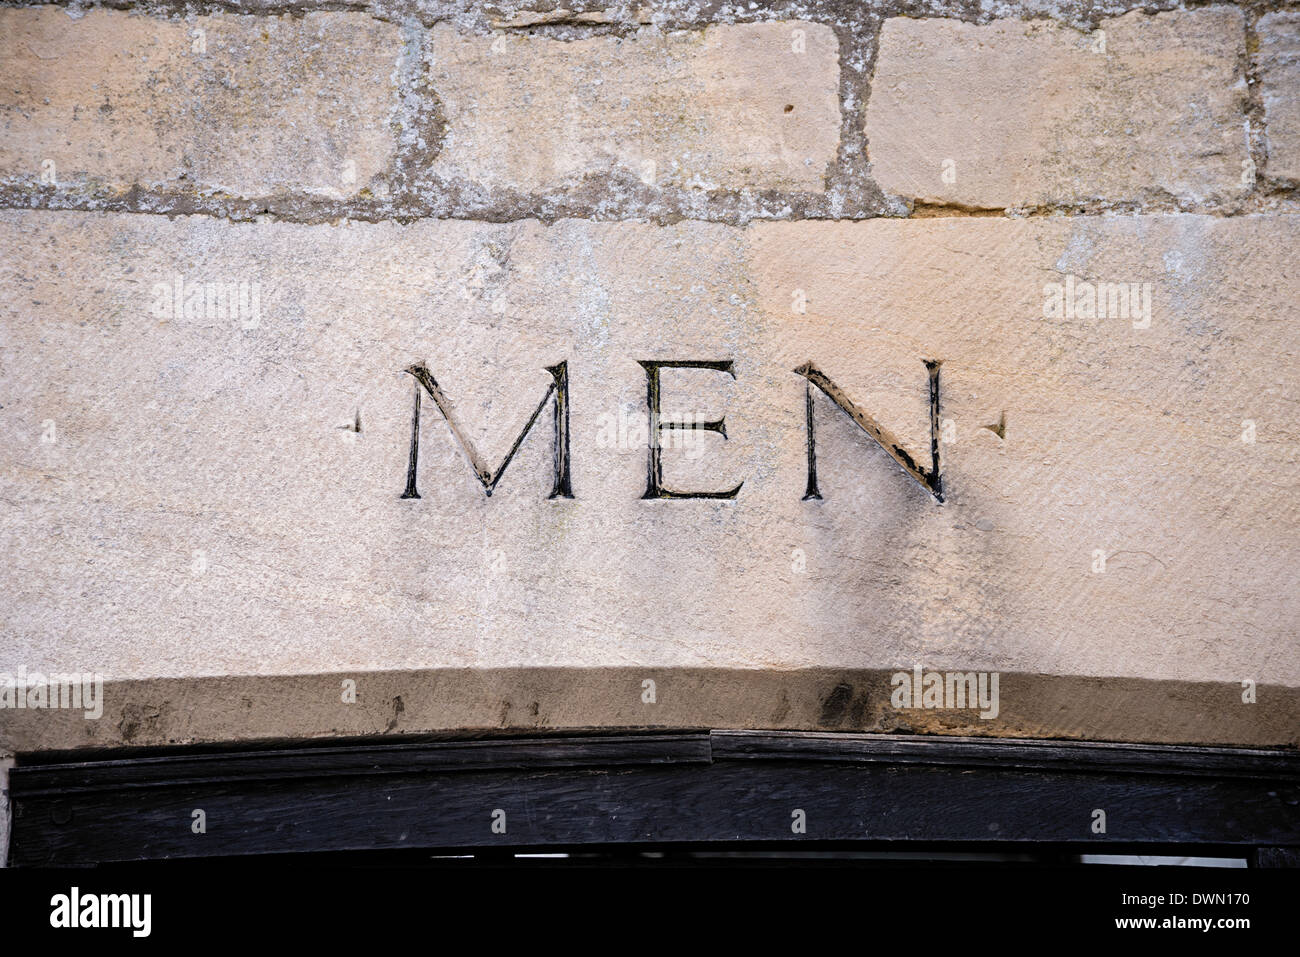 Mens toilets sign in Cotswold stone, Painswick, Glos - Stock Image